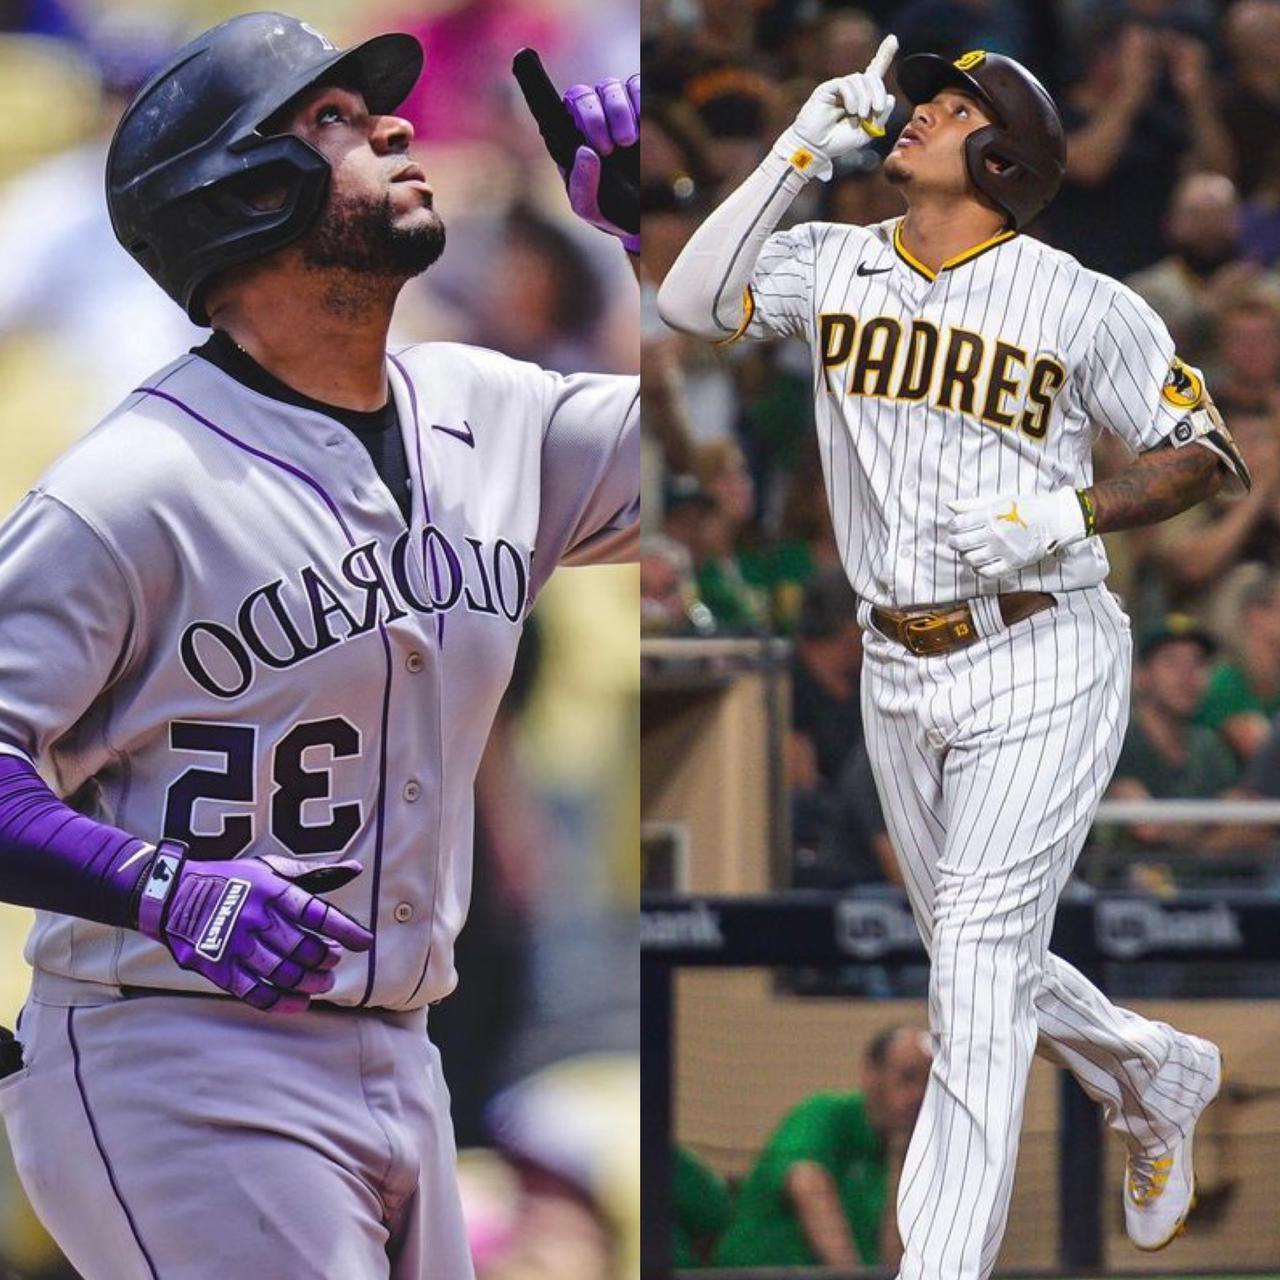 Colorado Rockies vs San Diego Padres Predictions And Match Odds: Padres To Win?